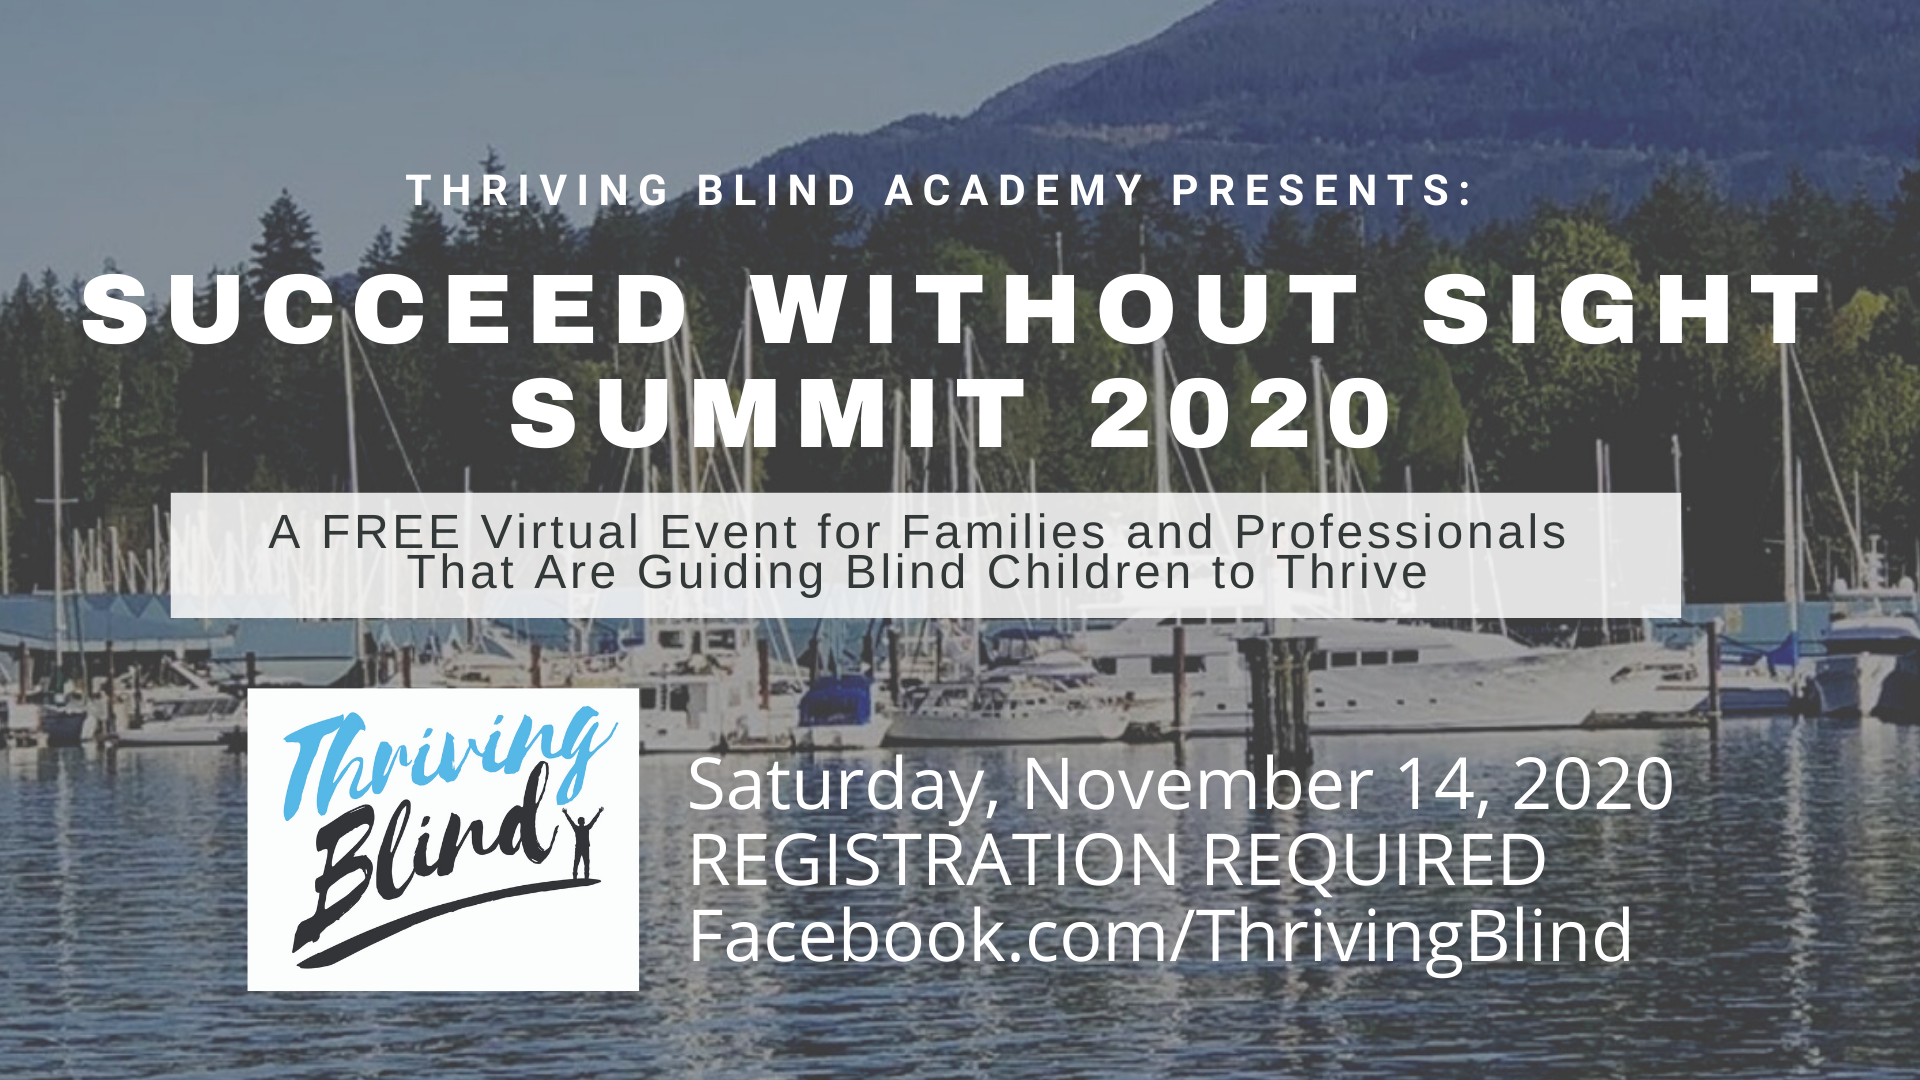 Succeed Without Sight Summit flyer